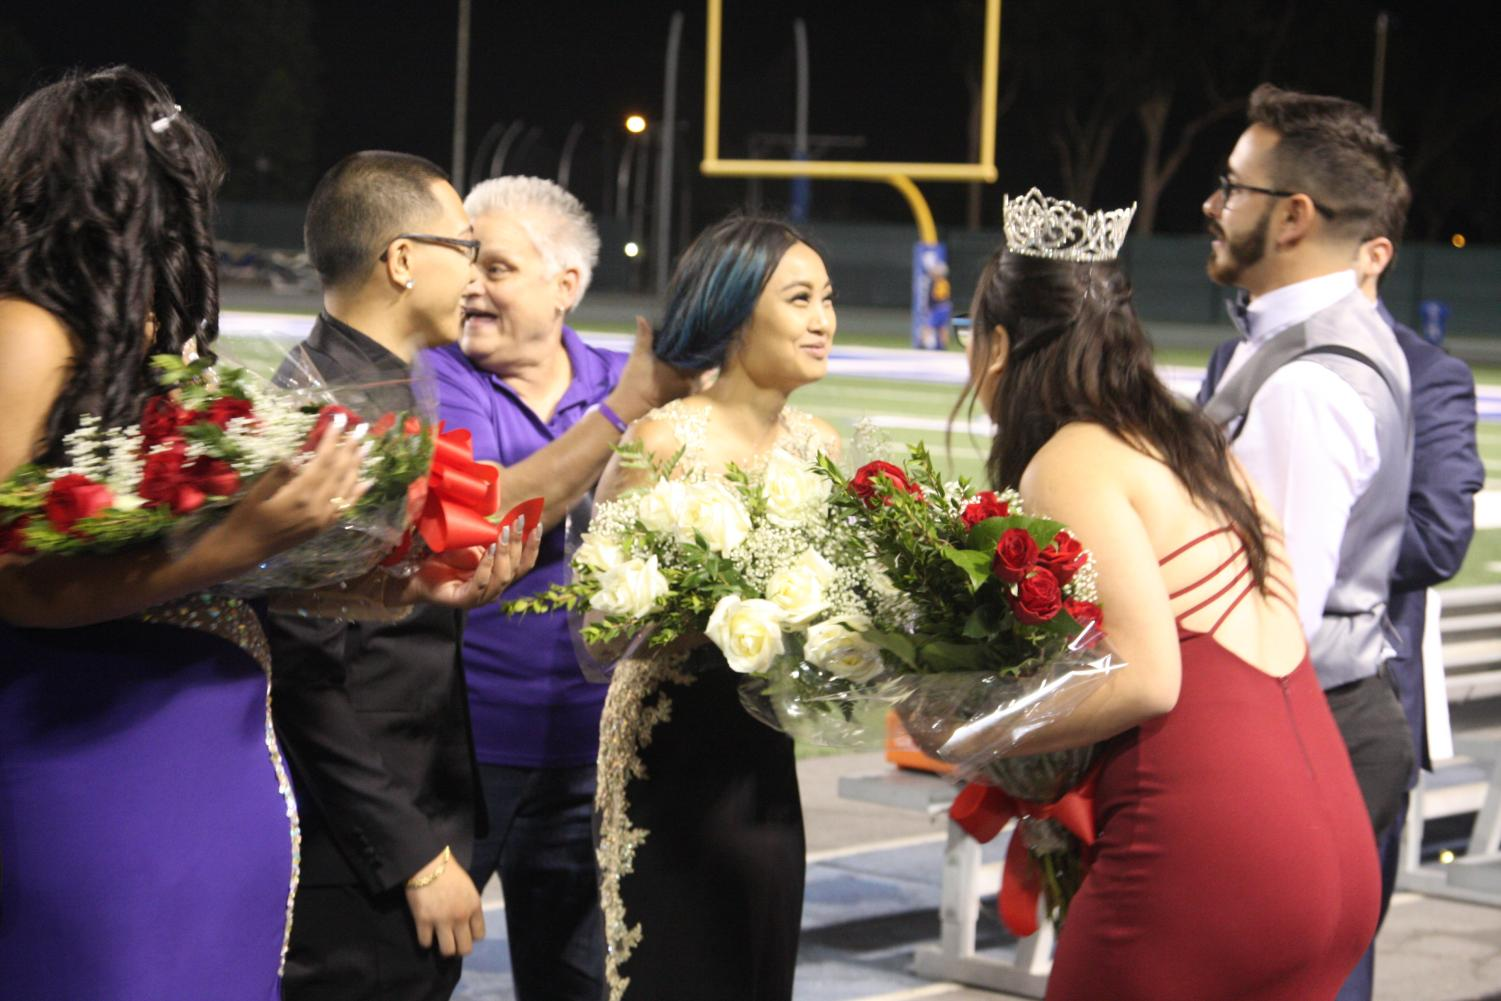 Jazmine Jose is crowned 2017 Homecoming Queen. The 2016 homecoming queen, Megan Kim, was invited back to be a part of the event. Photo credit: David Jenkins